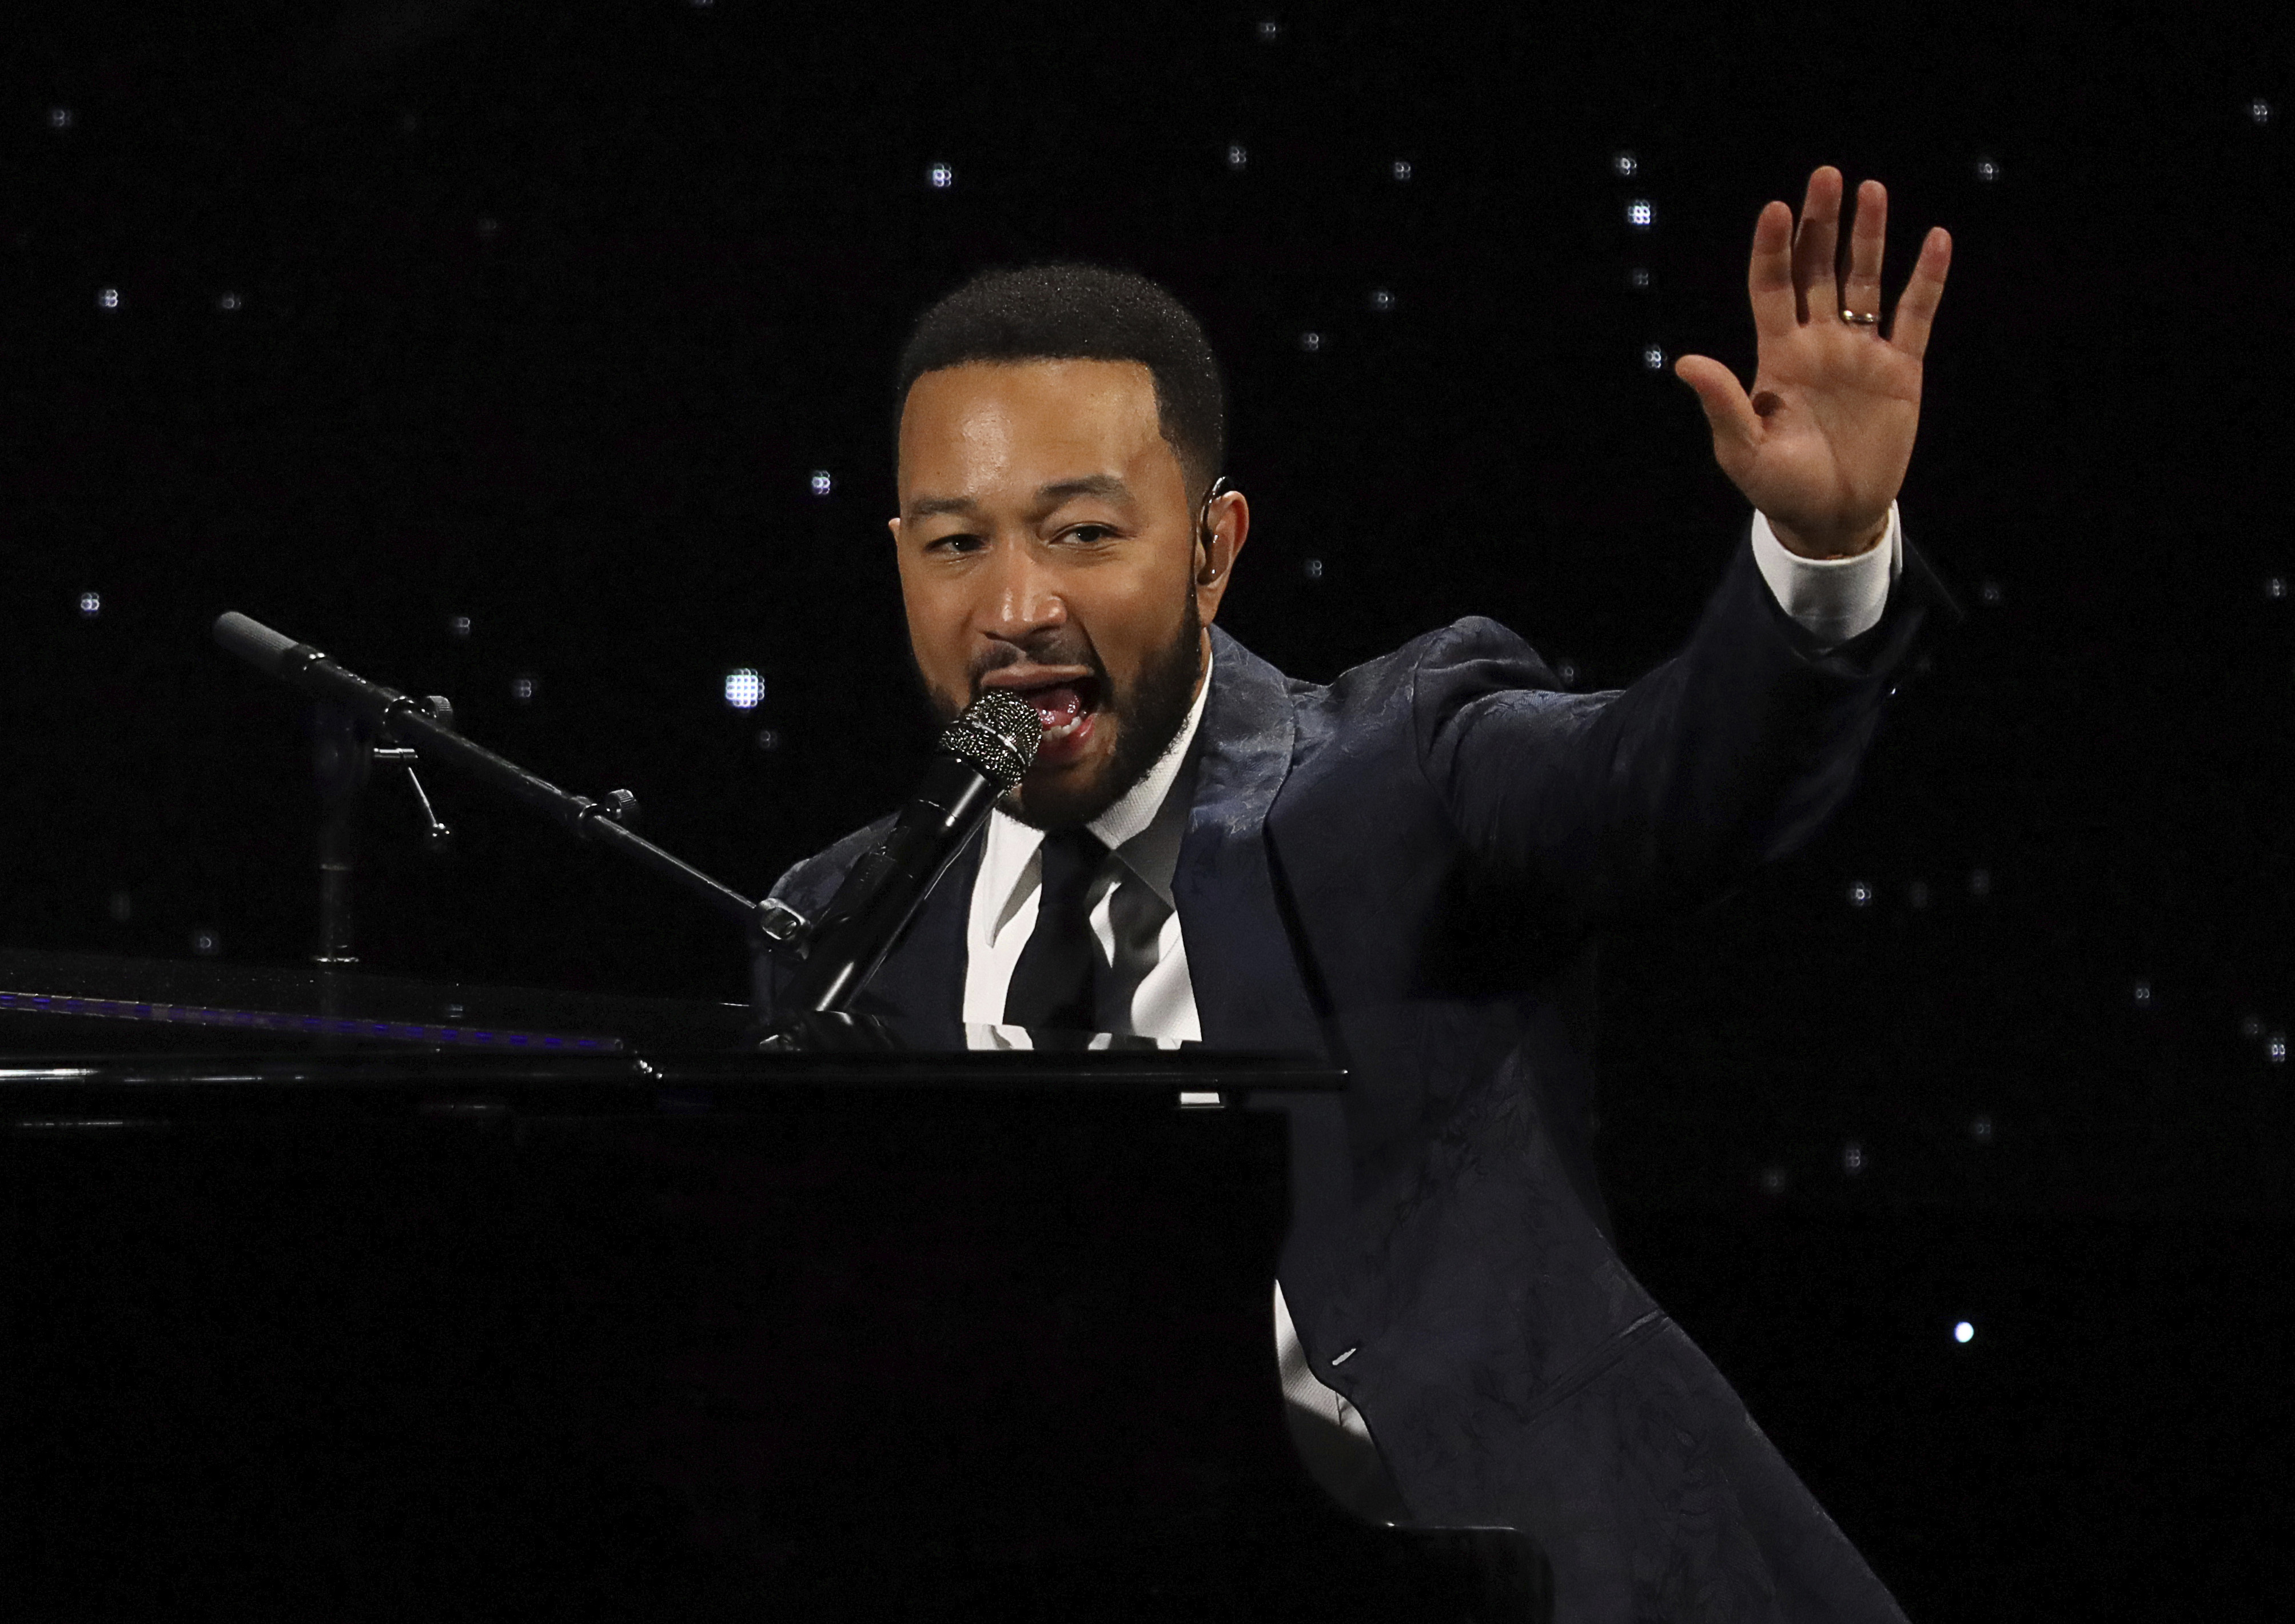 John Legend is among the lineup for this year's Red Nose Day TV special.